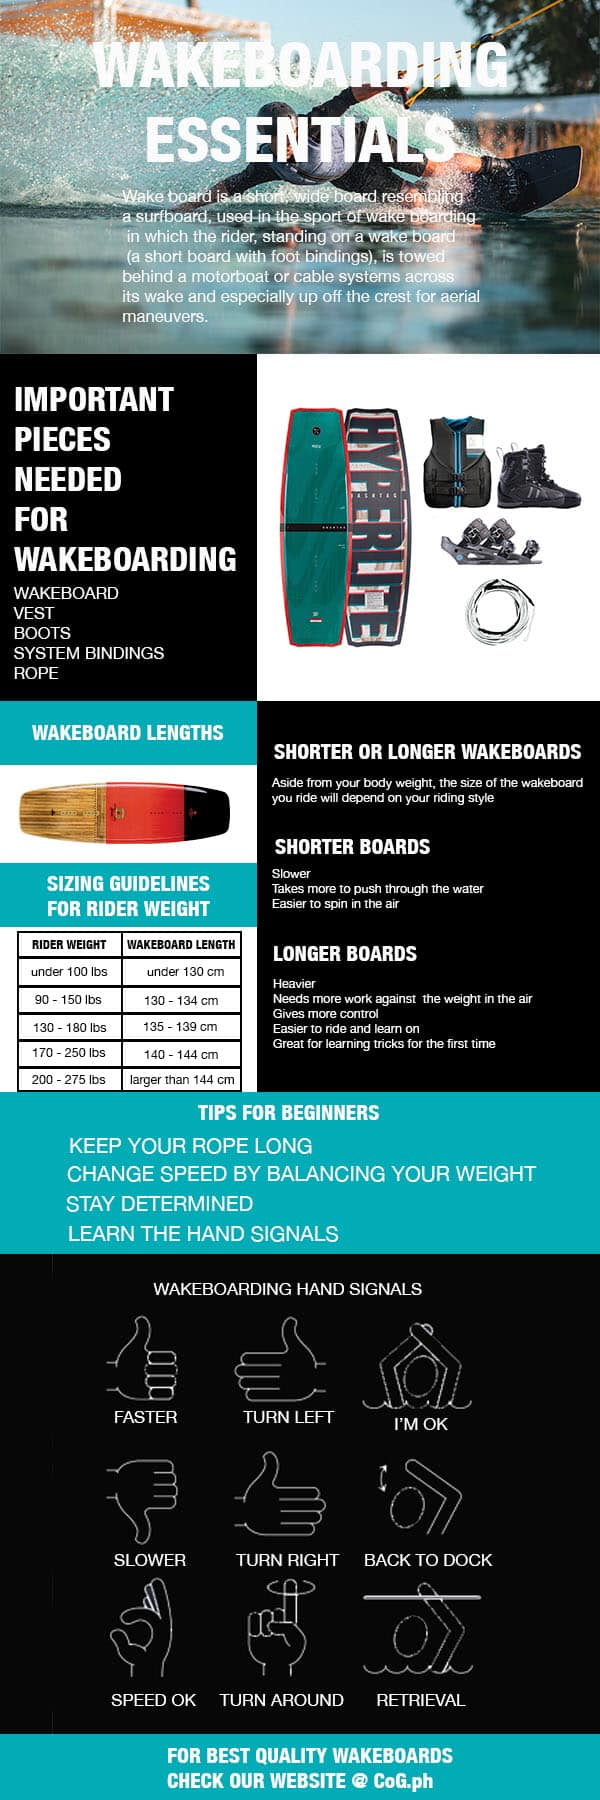 Important Pieces Needed for Wakeboarding